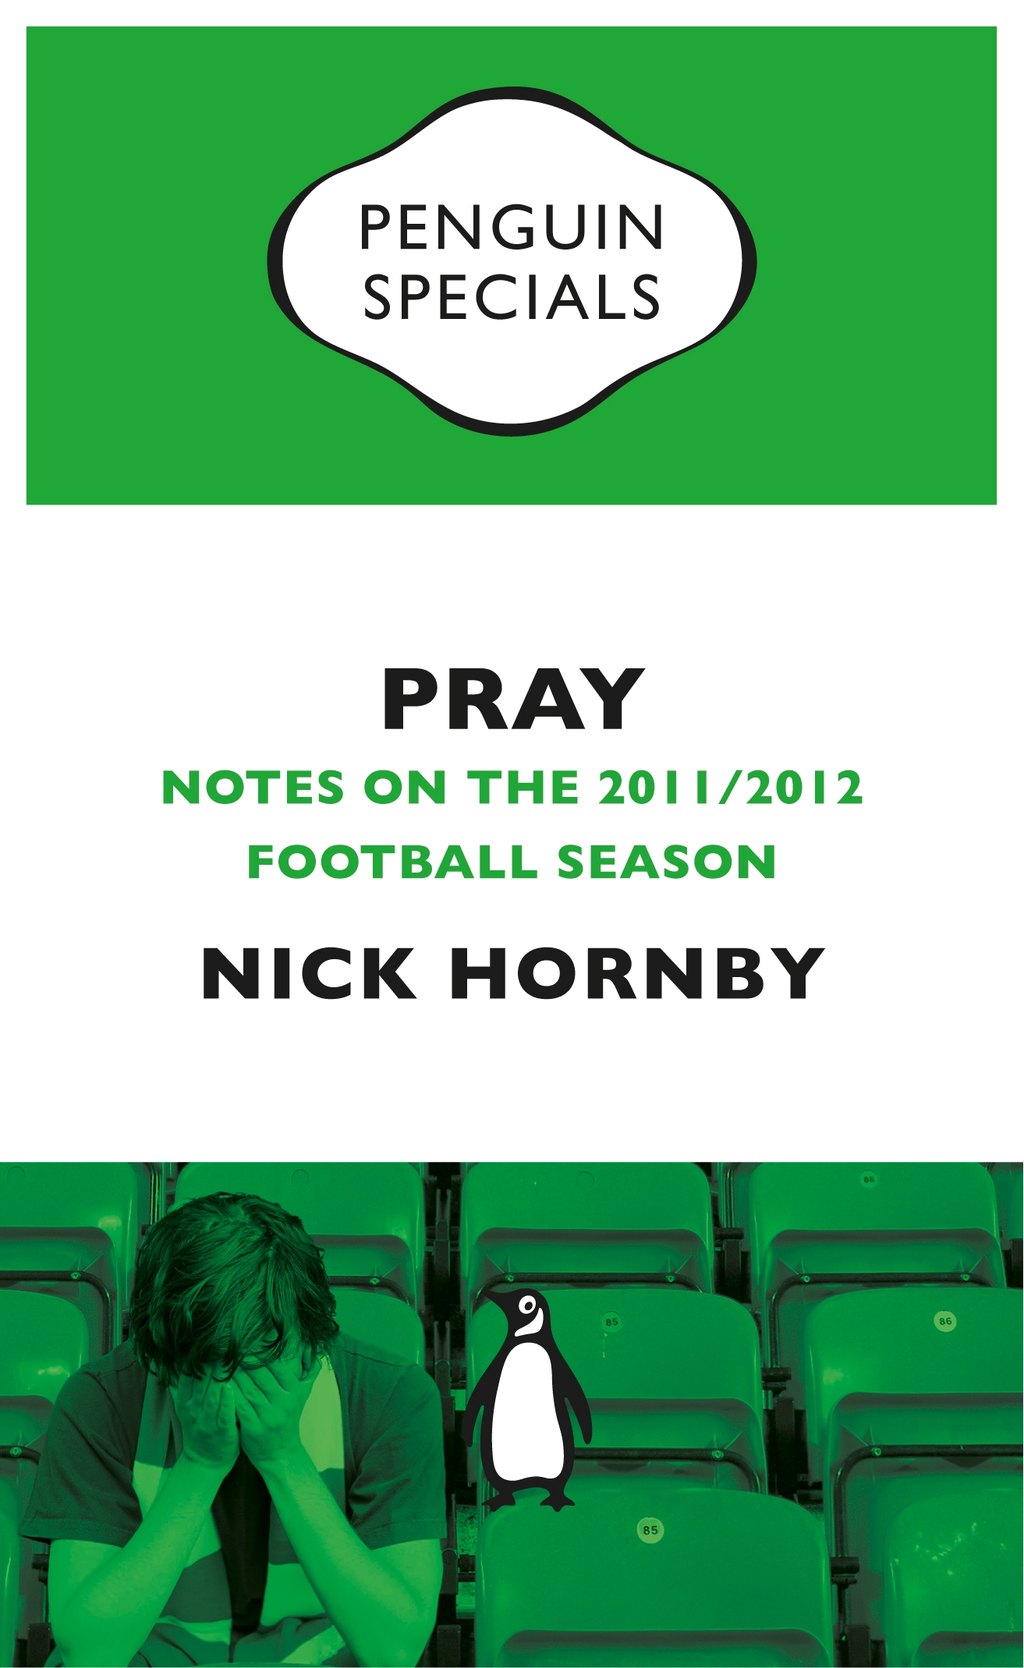 Pray (Penguin Specials) Notes on the 2011/2012 Football Season